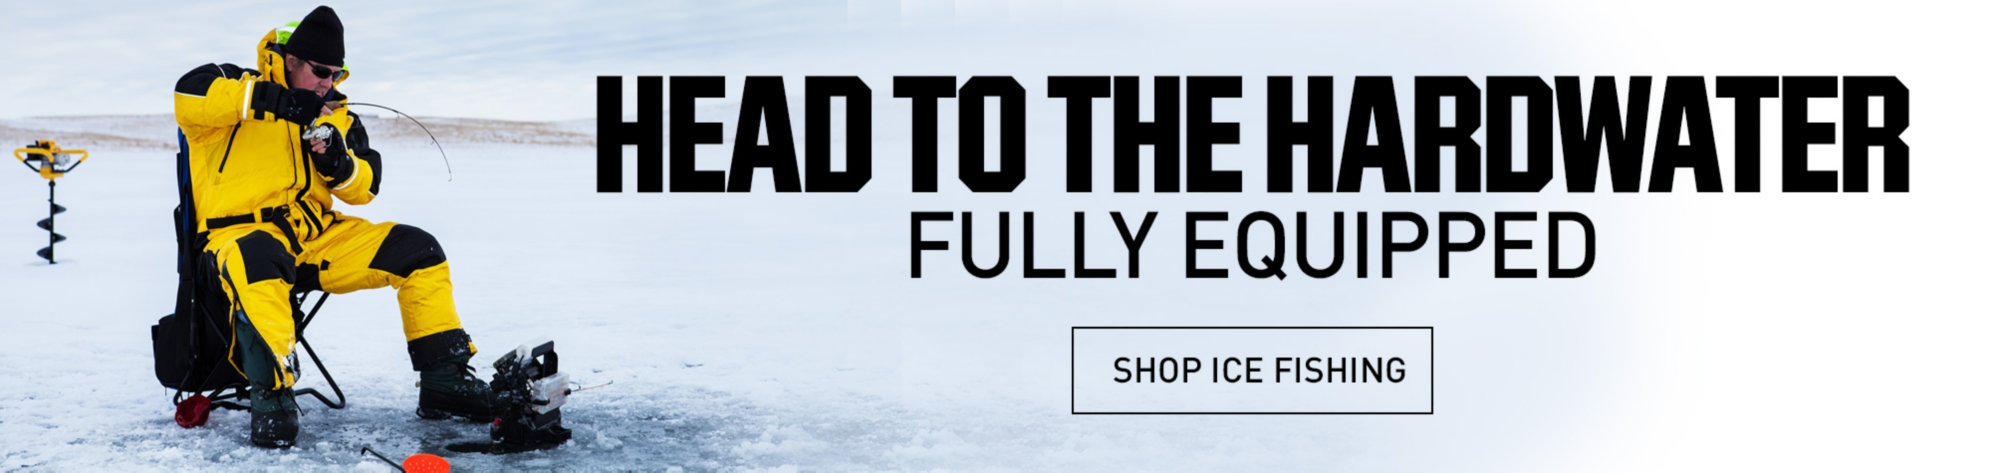 Shop Ice Fishing Gear